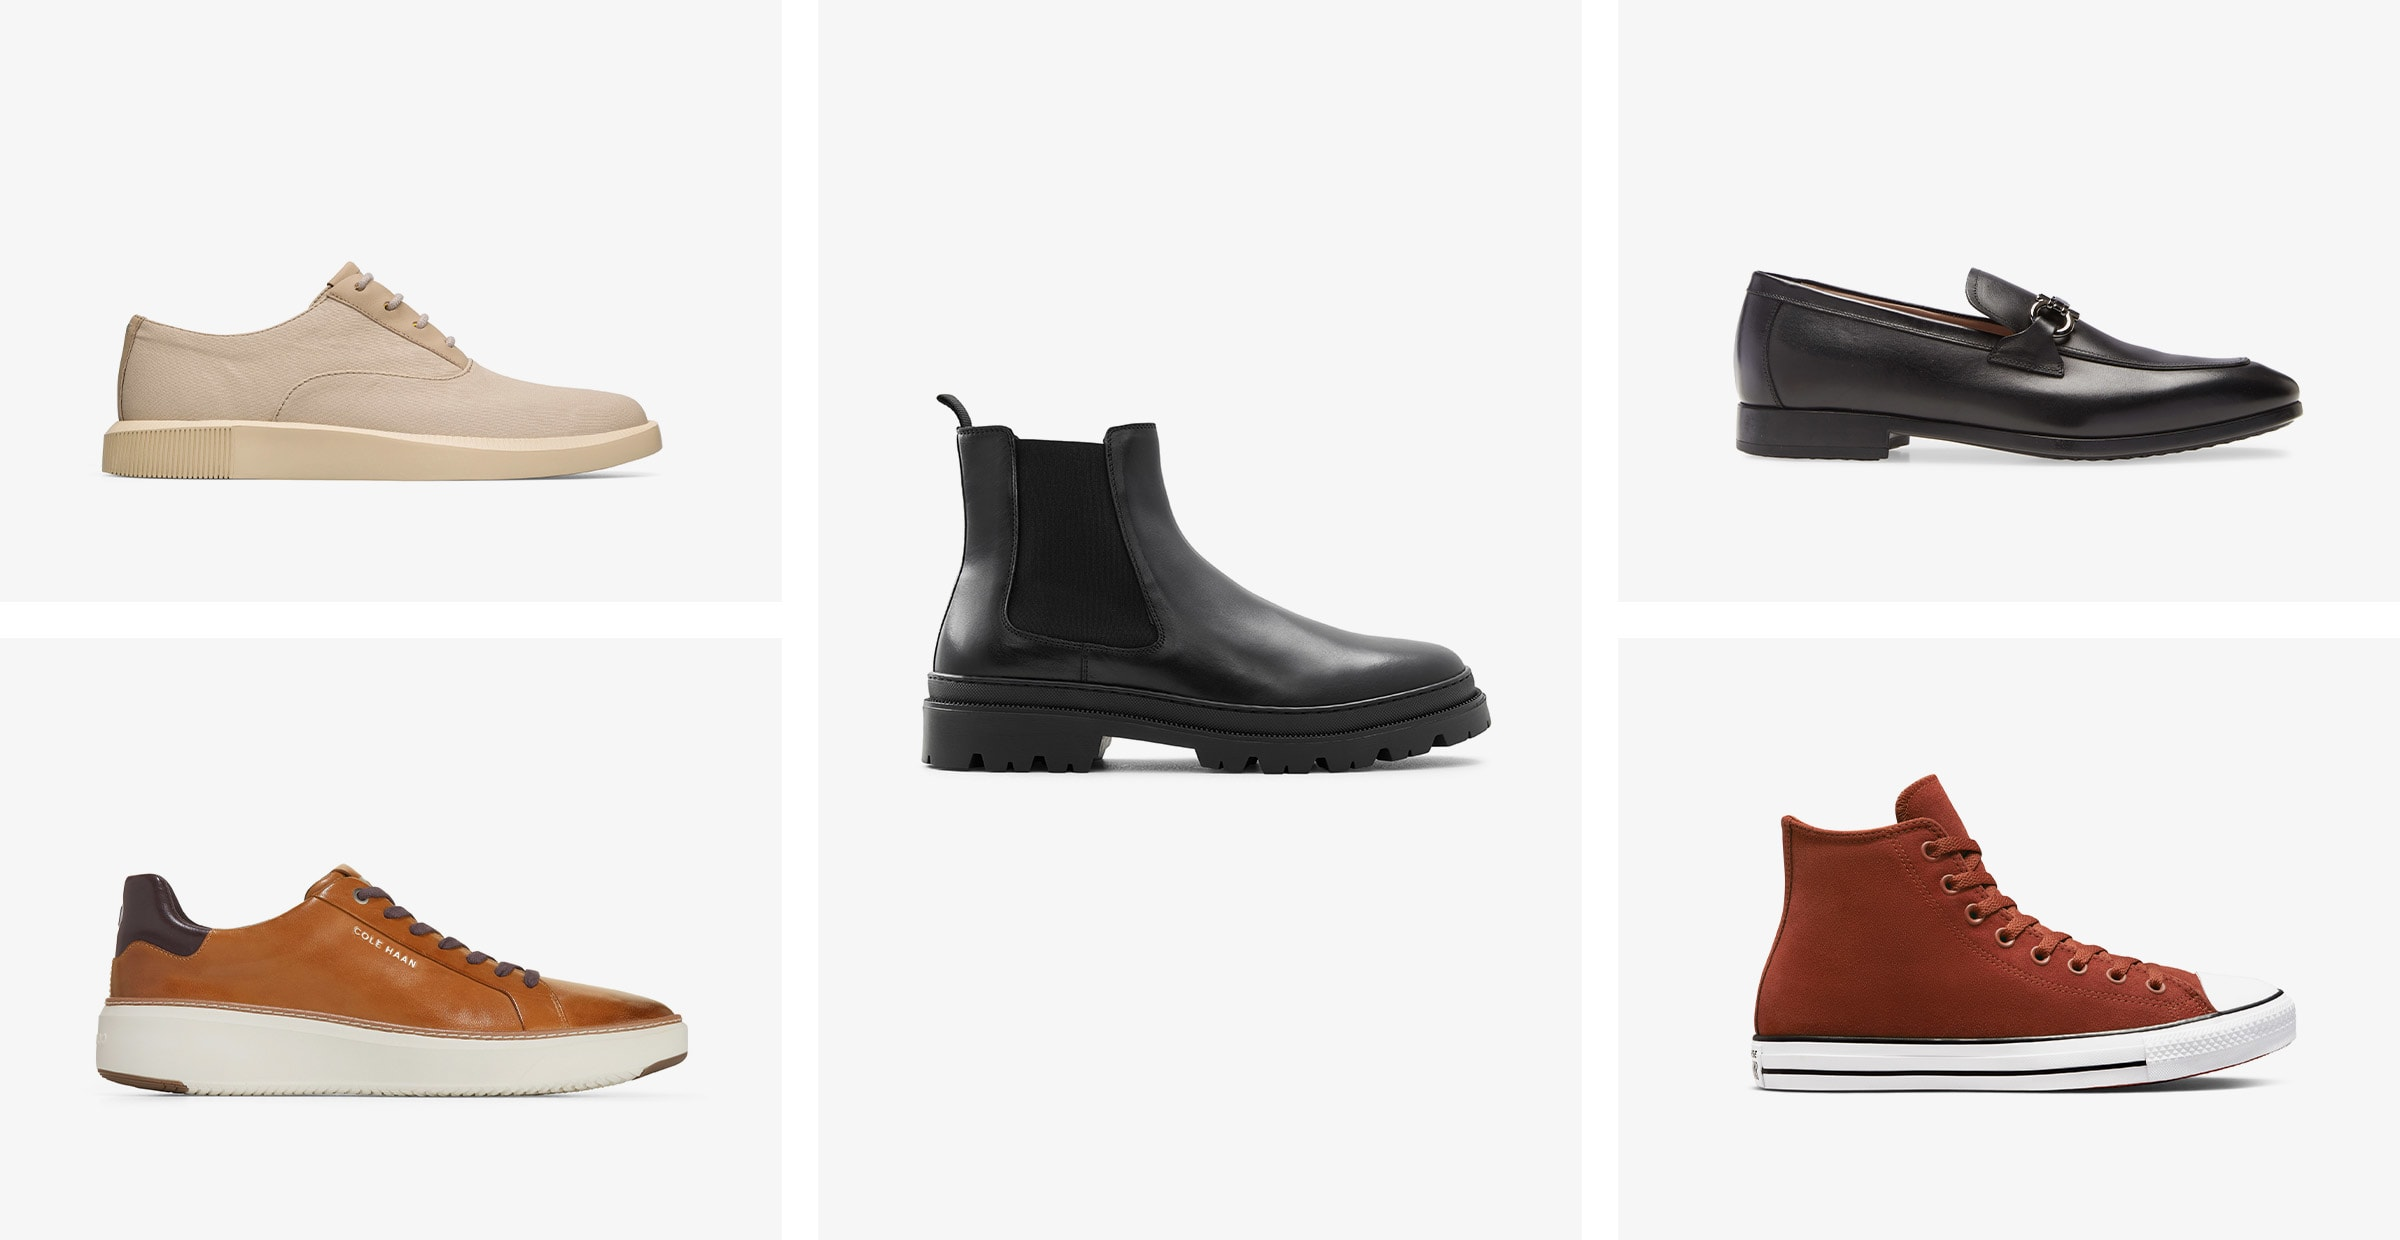 A beige lace-up, a tan sneaker with a white sole, a black Chelsea boot, a black loafer and a brown high-top sneaker.